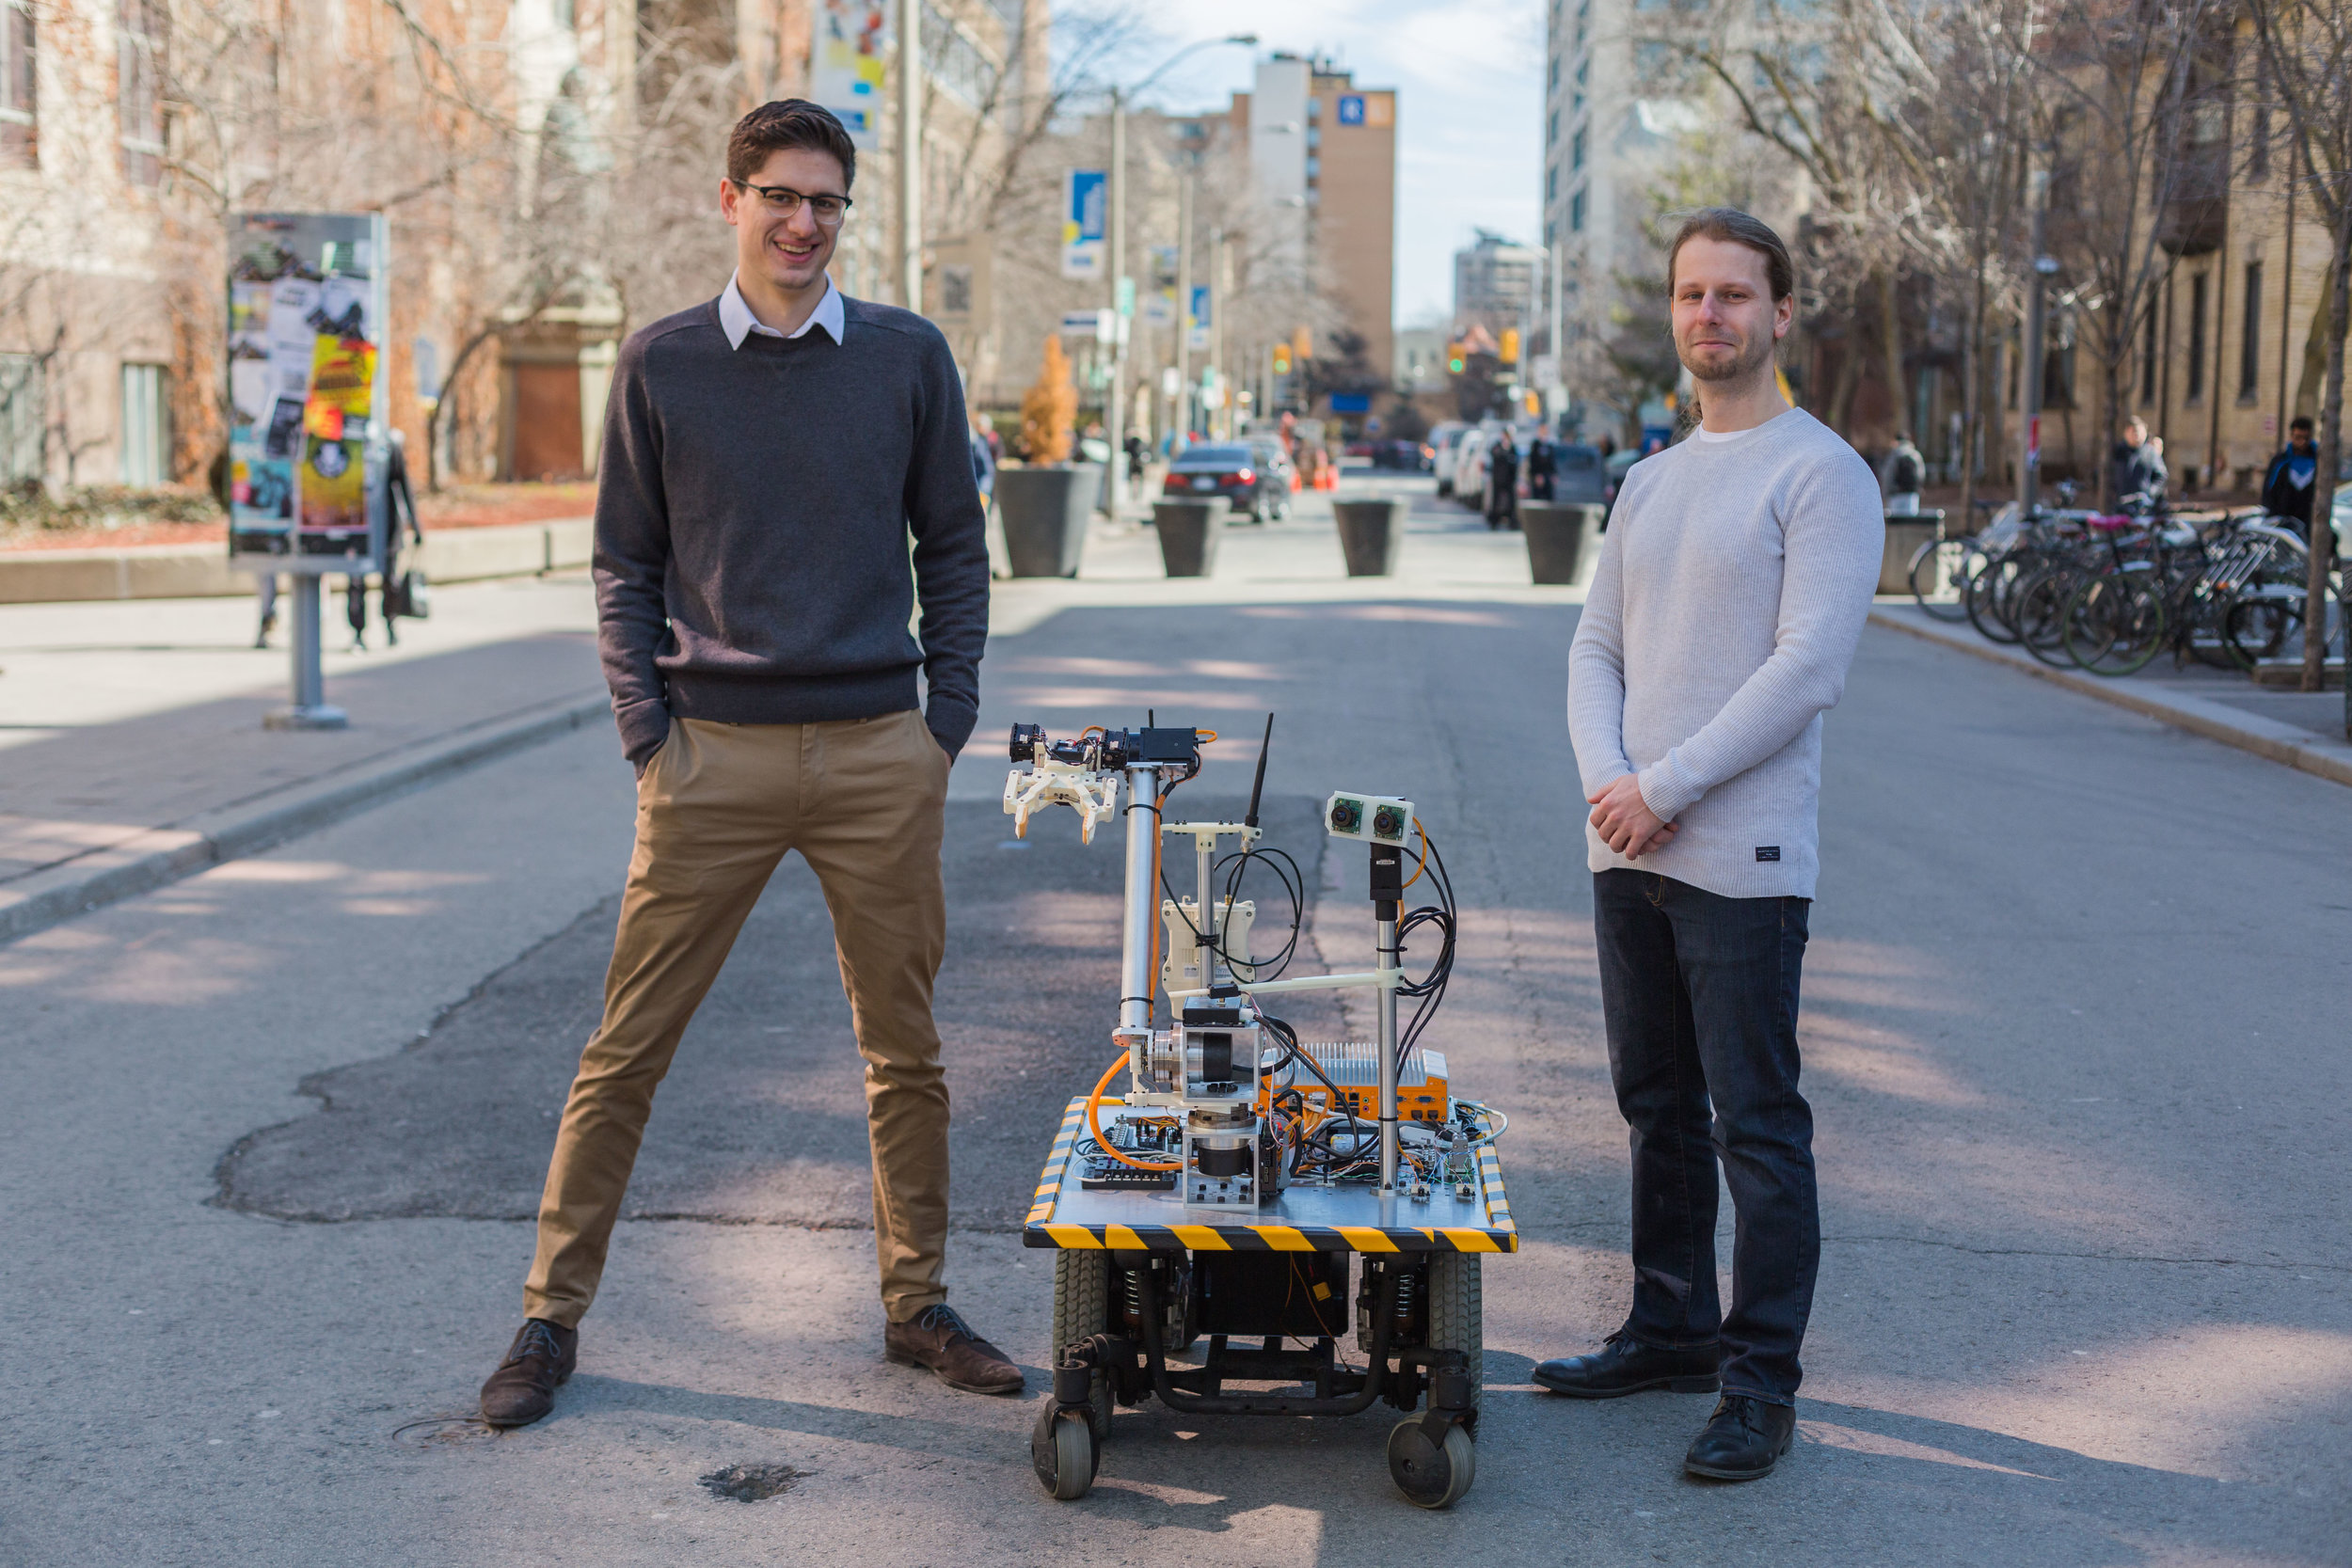 Our Story - What started out as an idea to make bomb disposal robots easier to use quickly turned into a passion of removing people from dangerous work environments. Read more about our founders and their vision for the future of robotics.